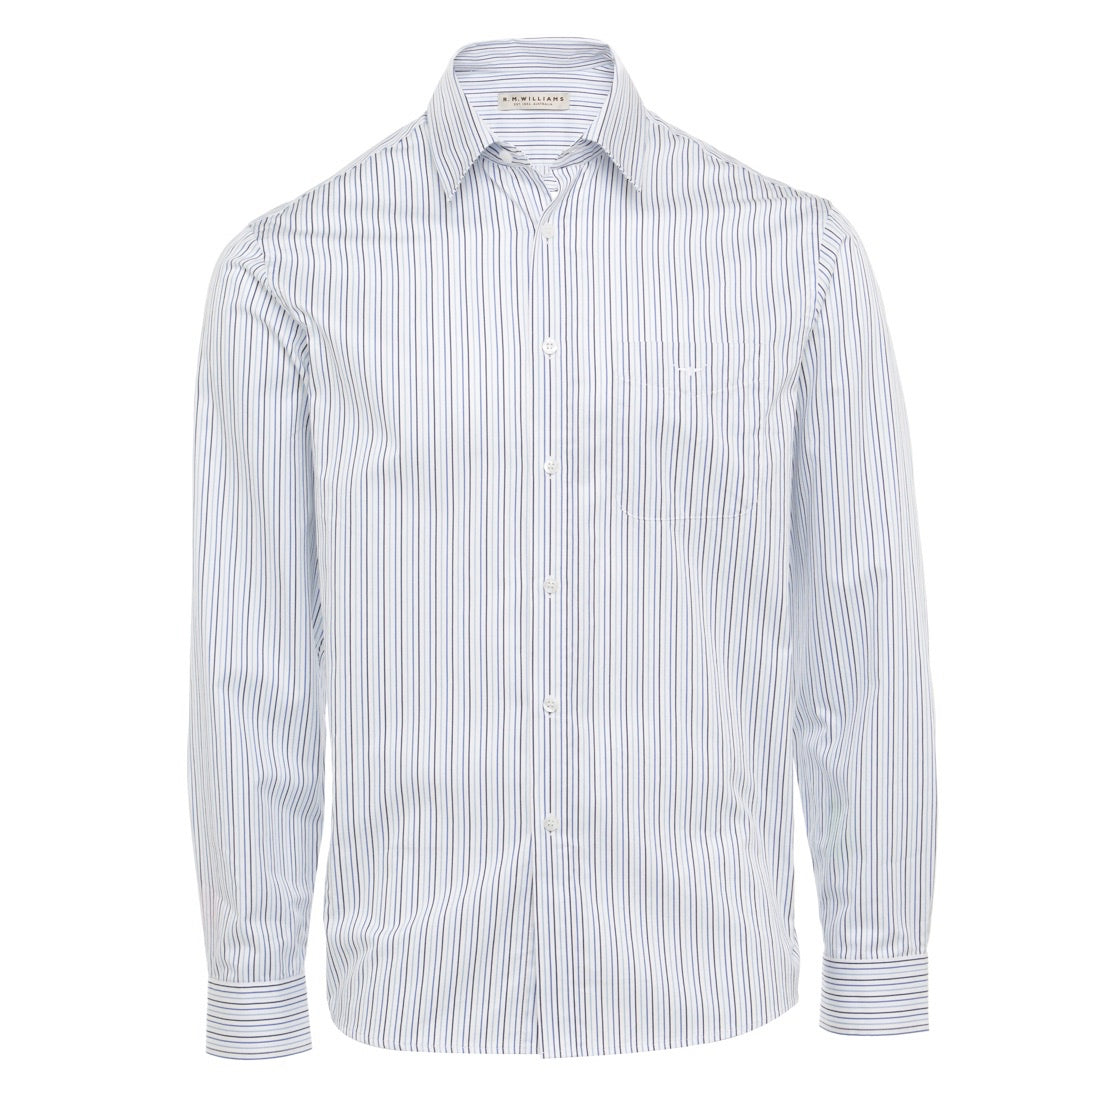 R.M.Williams Collins Shirt White/Navy/Blue